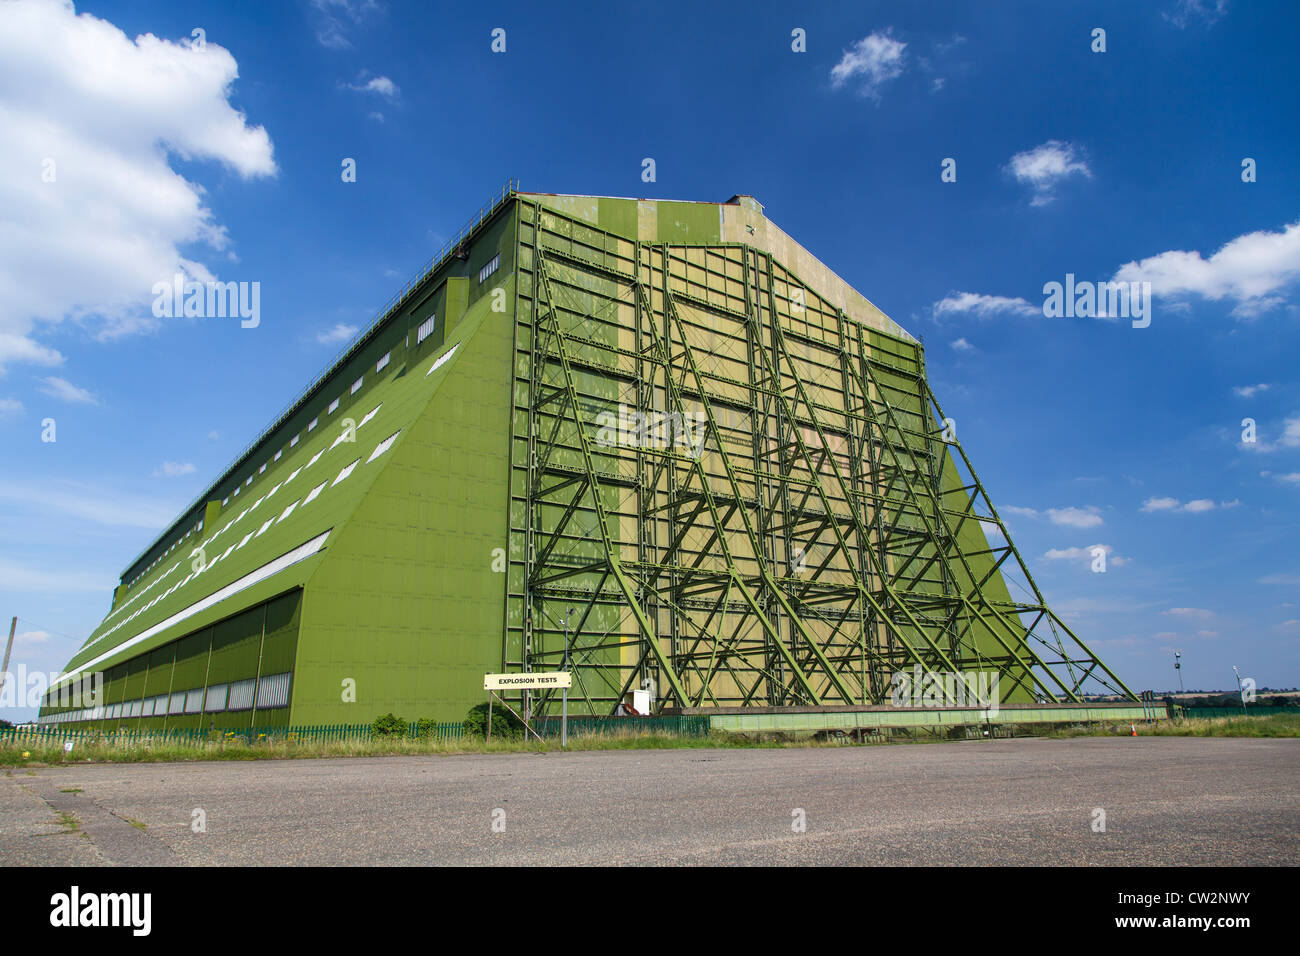 Airship hangar at Cardington, Bedfordshire, base of the R101 airship that crashed in 1930 Stock Photo